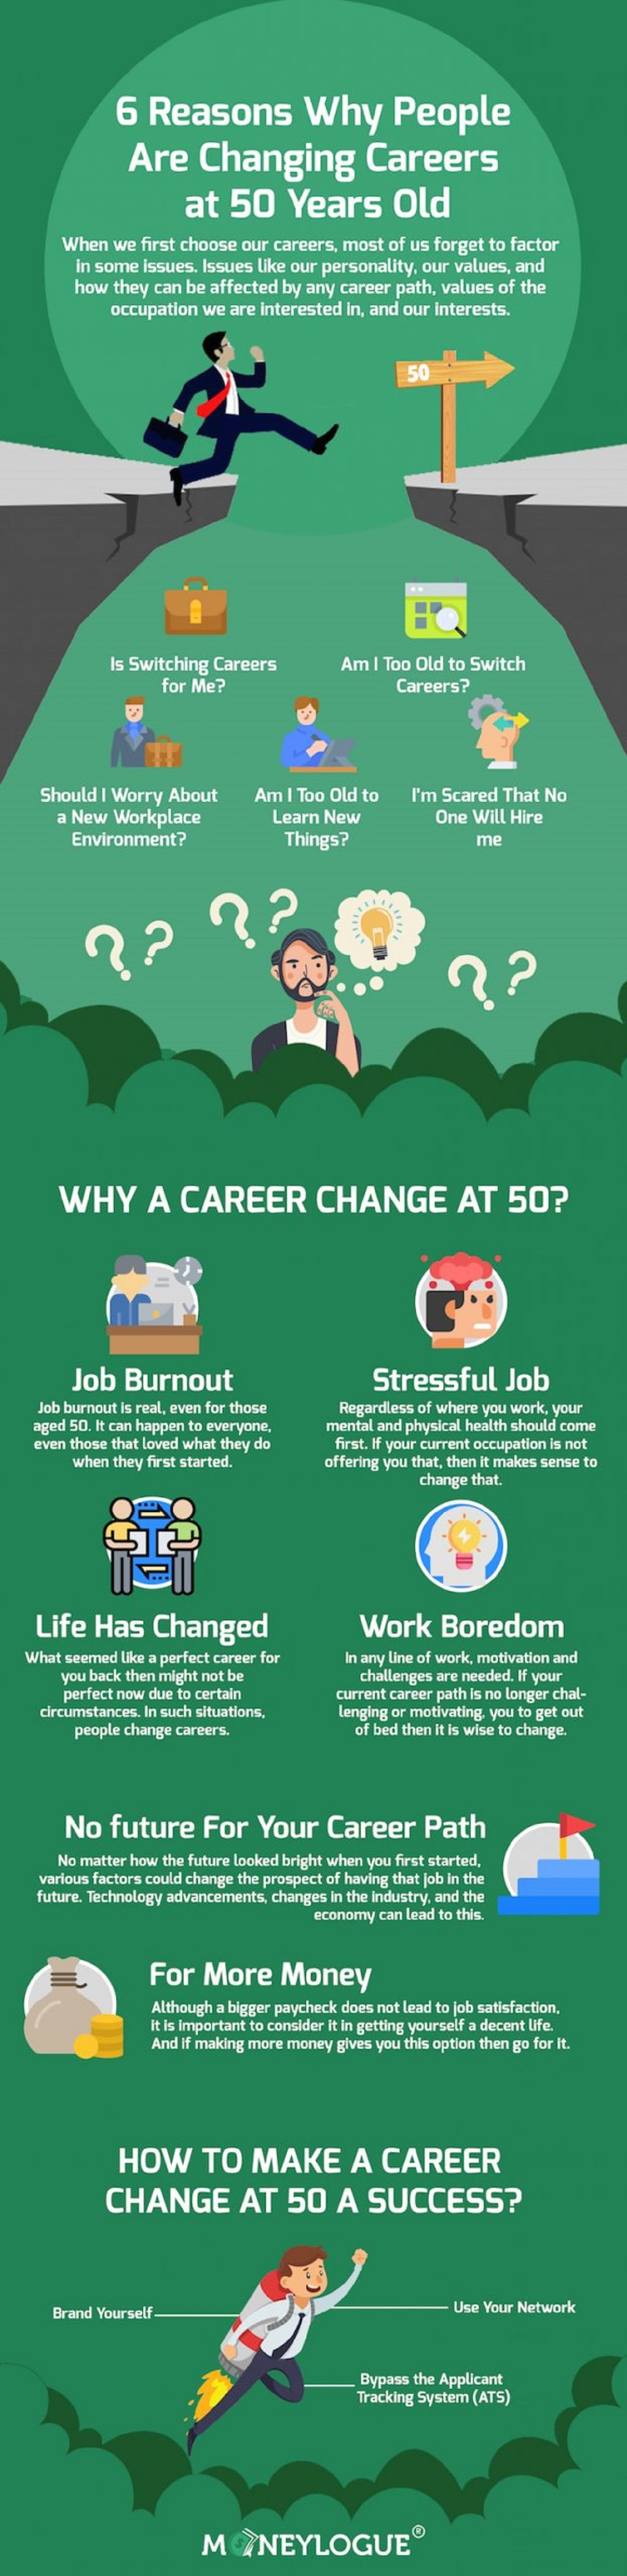 6-reasons-why-people-are-changing-careers-at-50-infographic